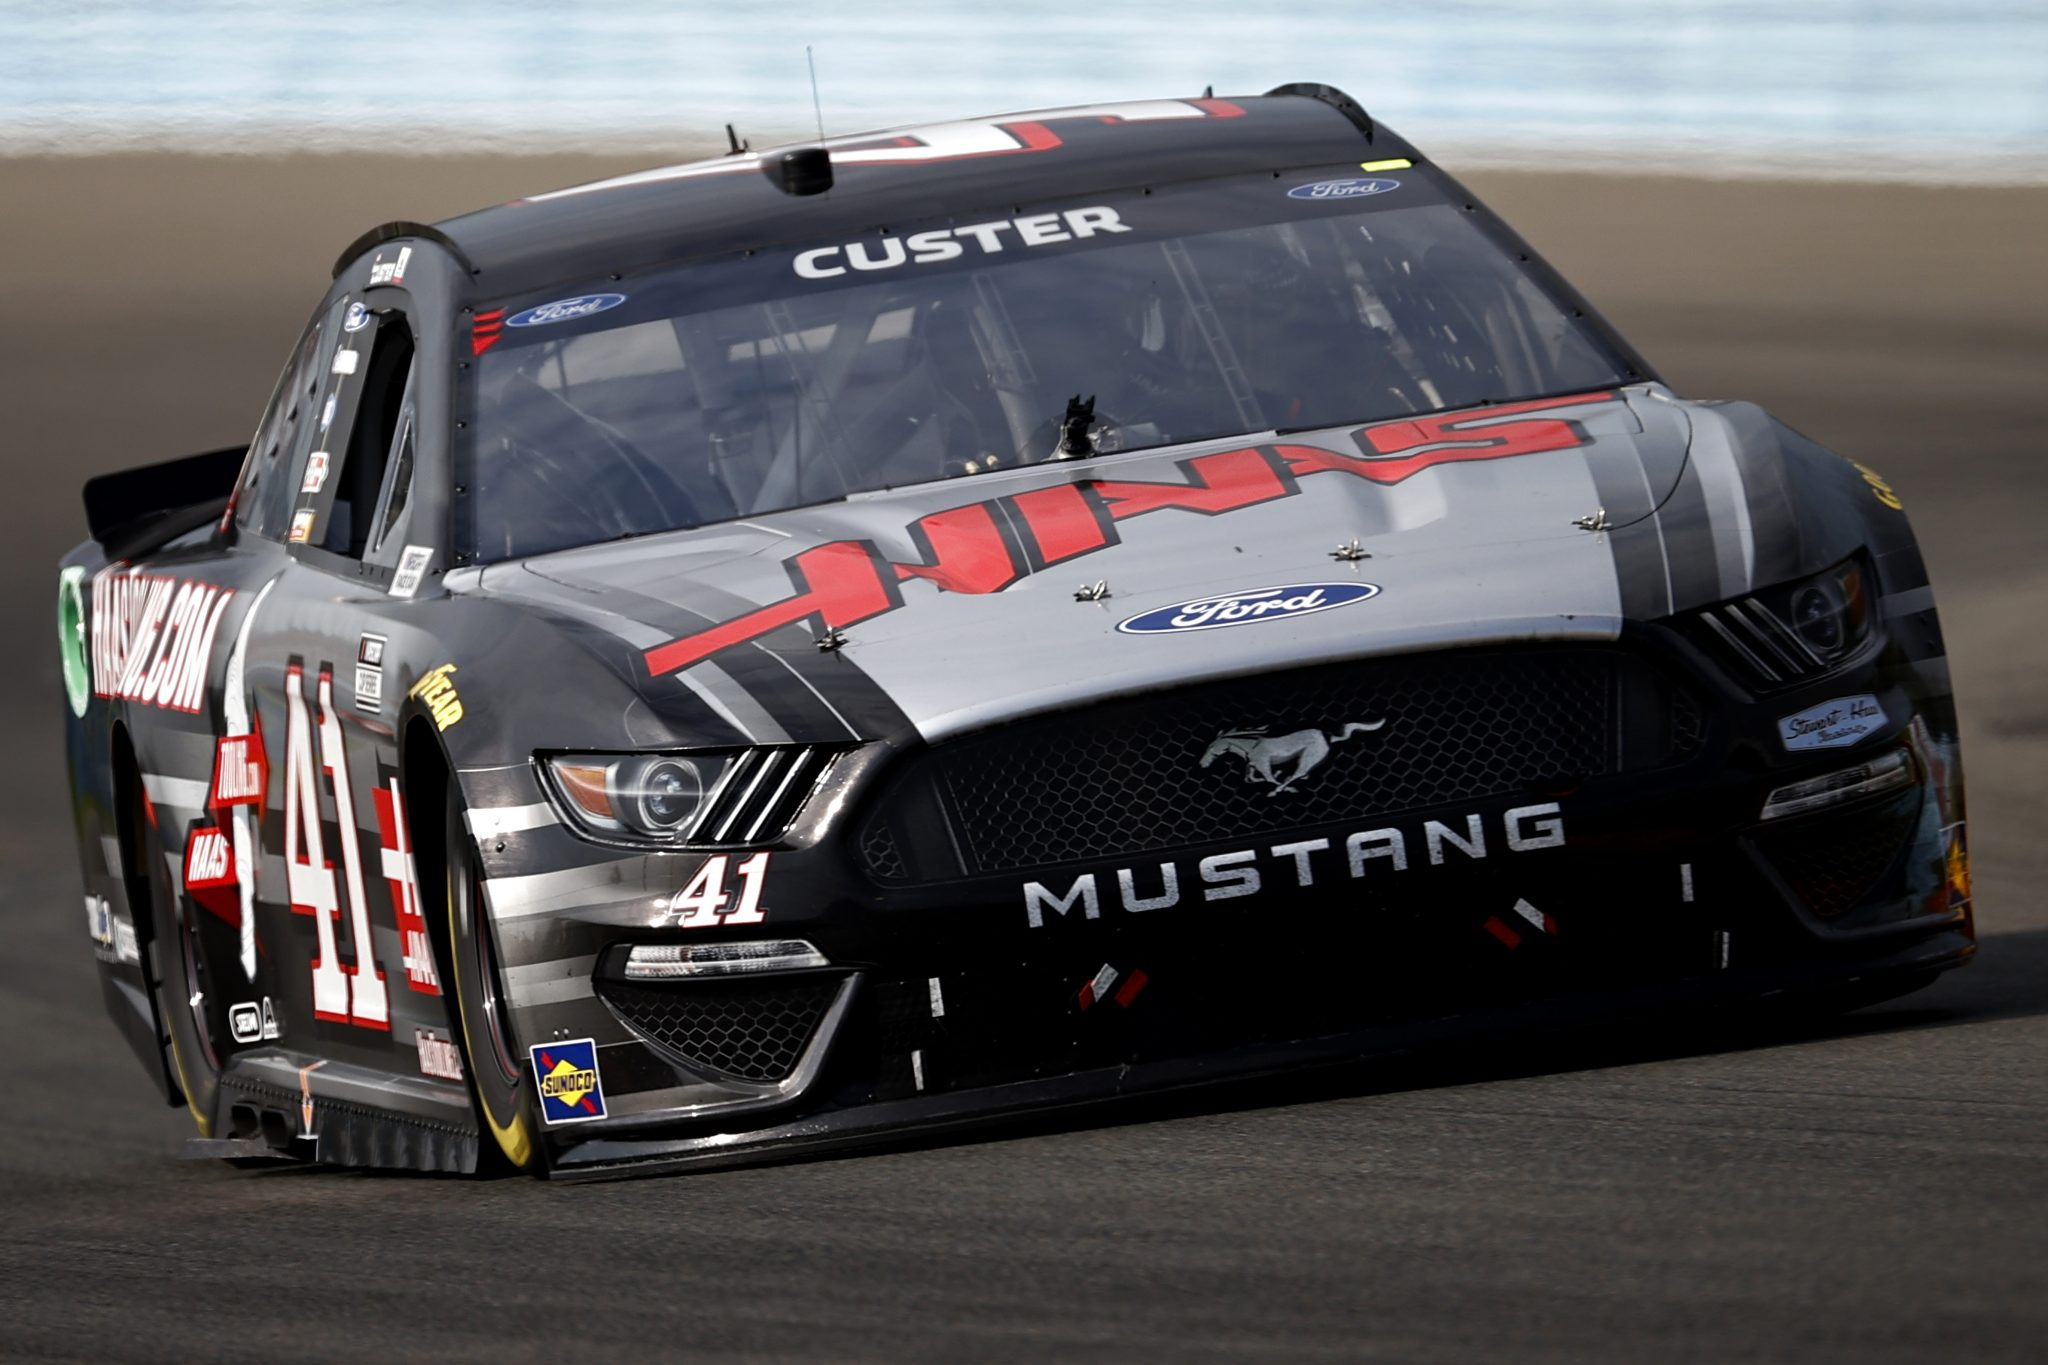 WATKINS GLEN, NEW YORK - AUGUST 08: Cole Custer, driver of the #41 HaasTooling.com Ford, drives during the NASCAR Cup Series Go Bowling at The Glen at Watkins Glen International on August 08, 2021 in Watkins Glen, New York. (Photo by Jared C. Tilton/Getty Images) | Getty Images